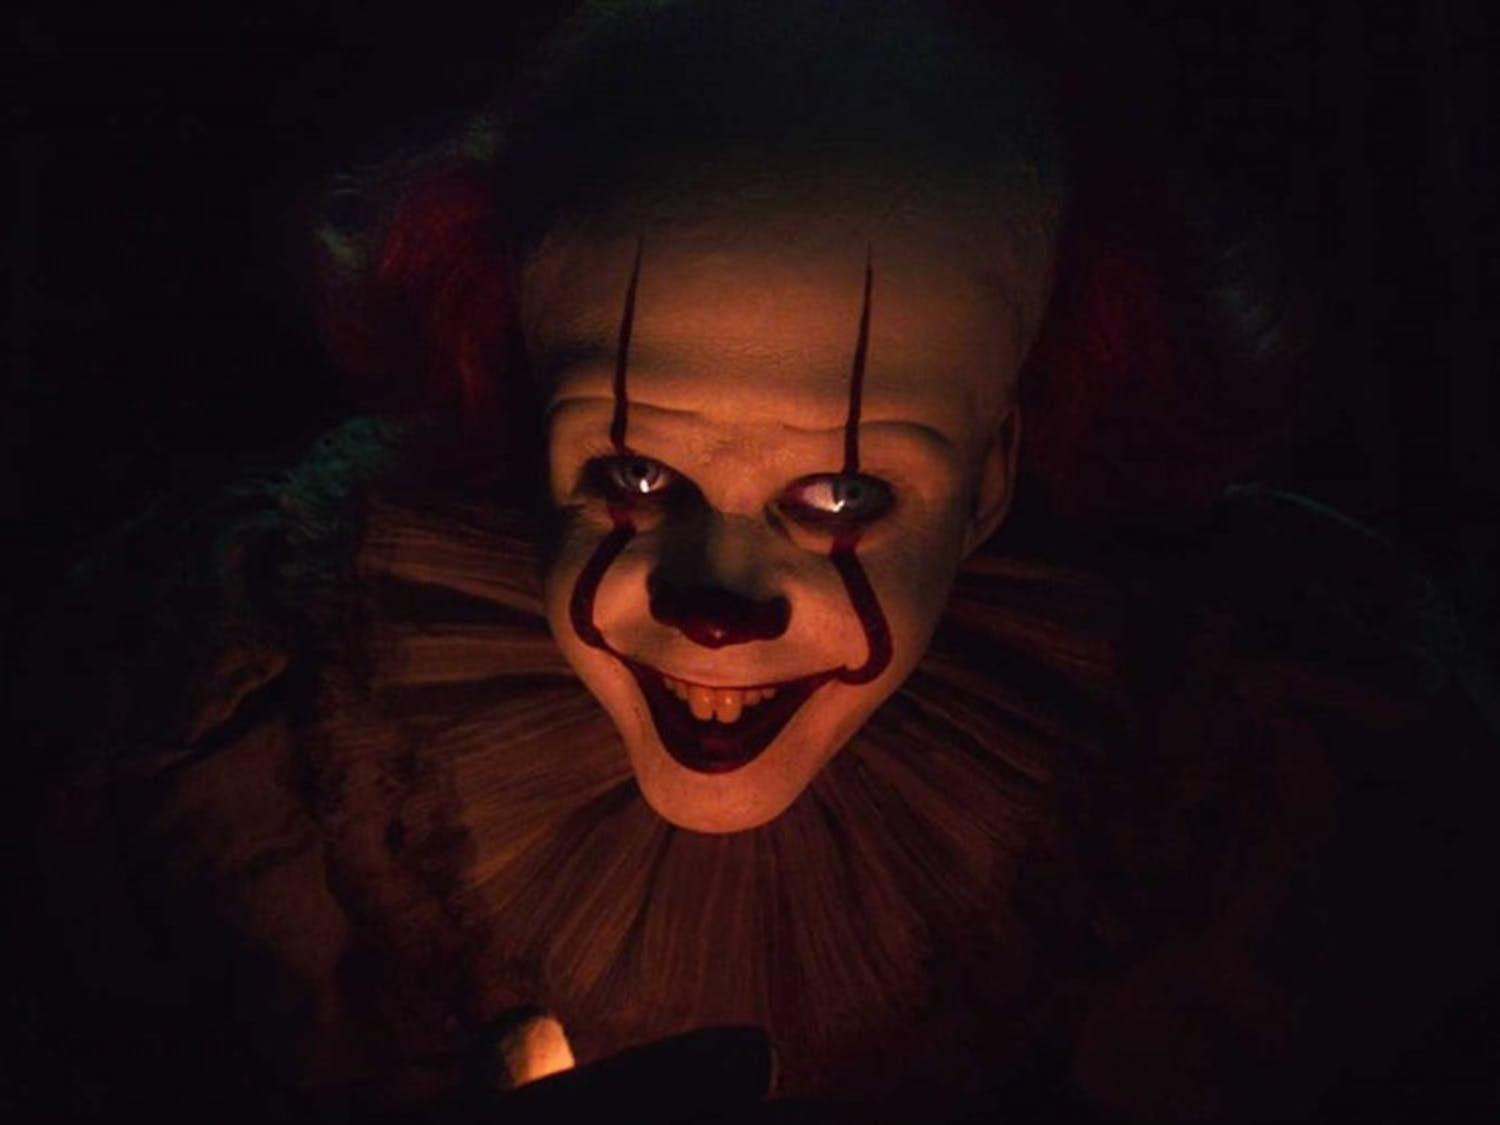 """IT: Chapter Two"" smashes the box offices, concluding Stephen King's novel beautifully but fails to live up to the splendid of the first film."